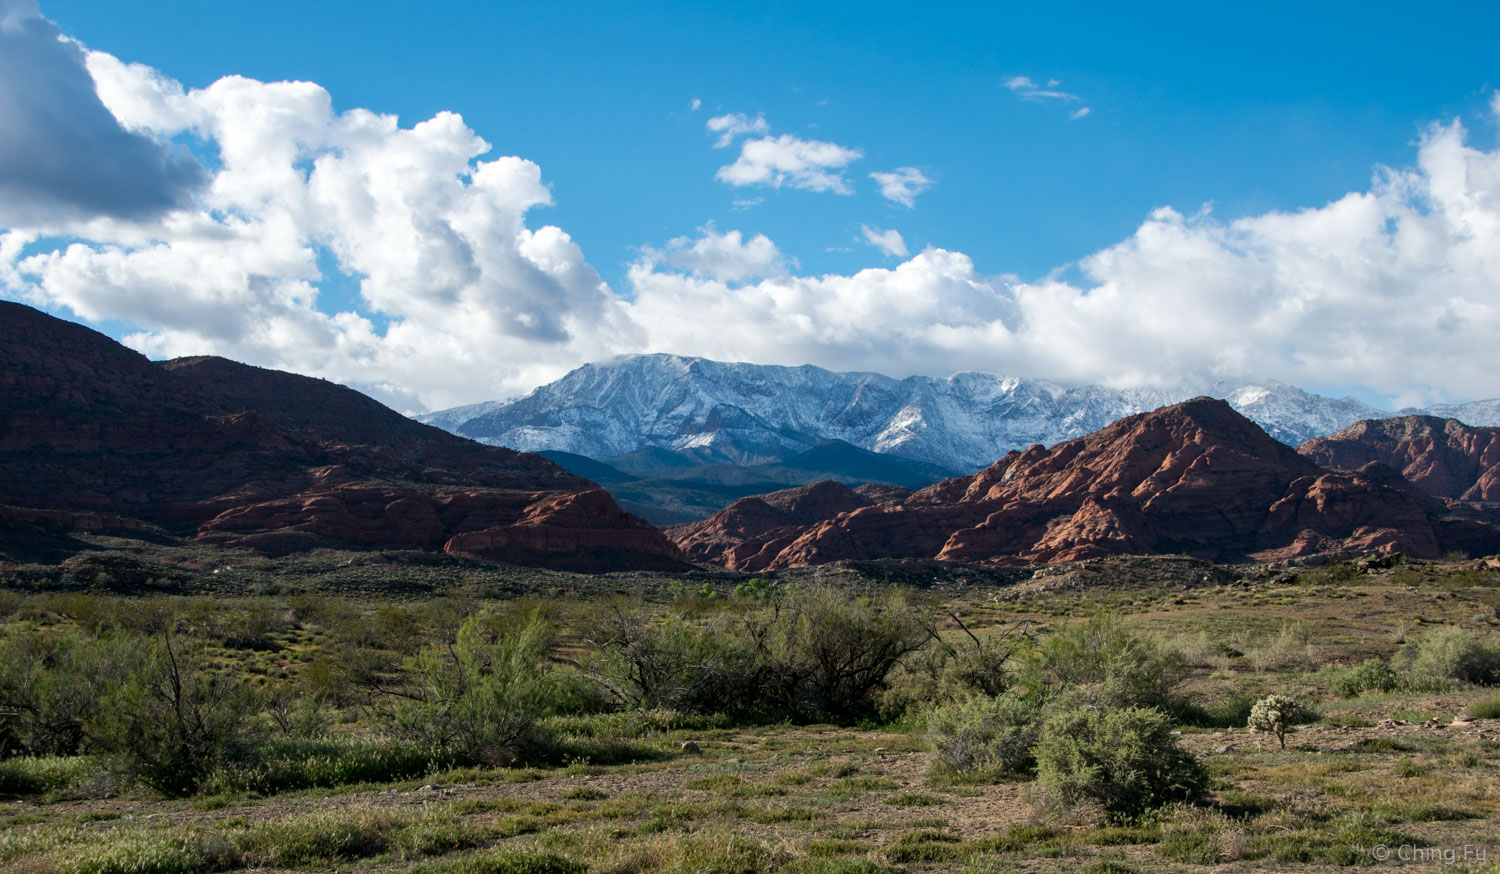 View in Red Cliffs National Conservation Area.